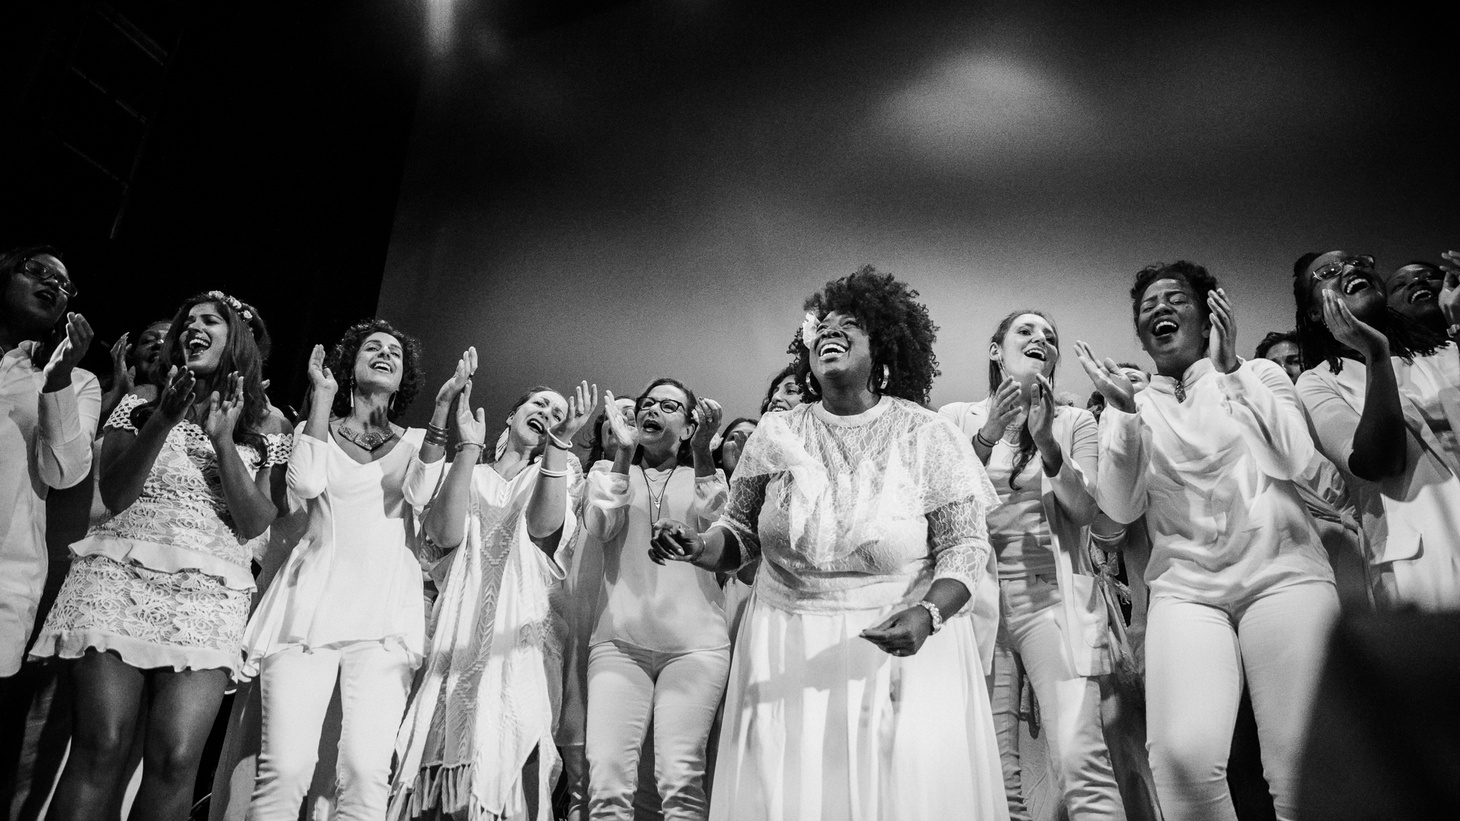 When you join over 70 strong women and non-binary singers together, you get The Resistance Revival Chorus, an outfit commited to breathing joy into the resistance and elevating women's voices into a positive and uplifting message.